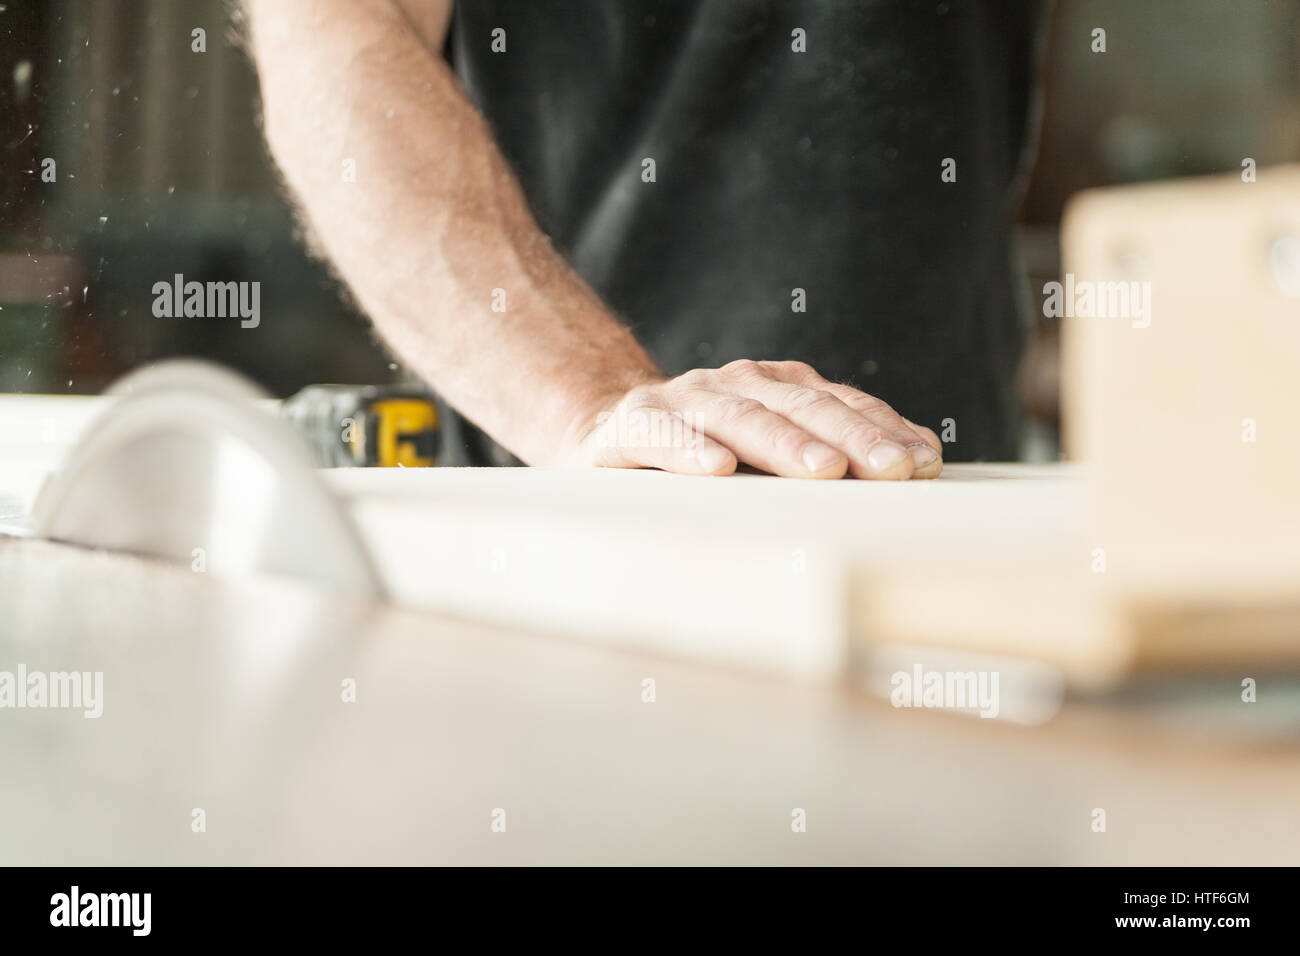 woodworker cutting down a piece of a wooden board using his circular saw and his powerful arms - Stock Image